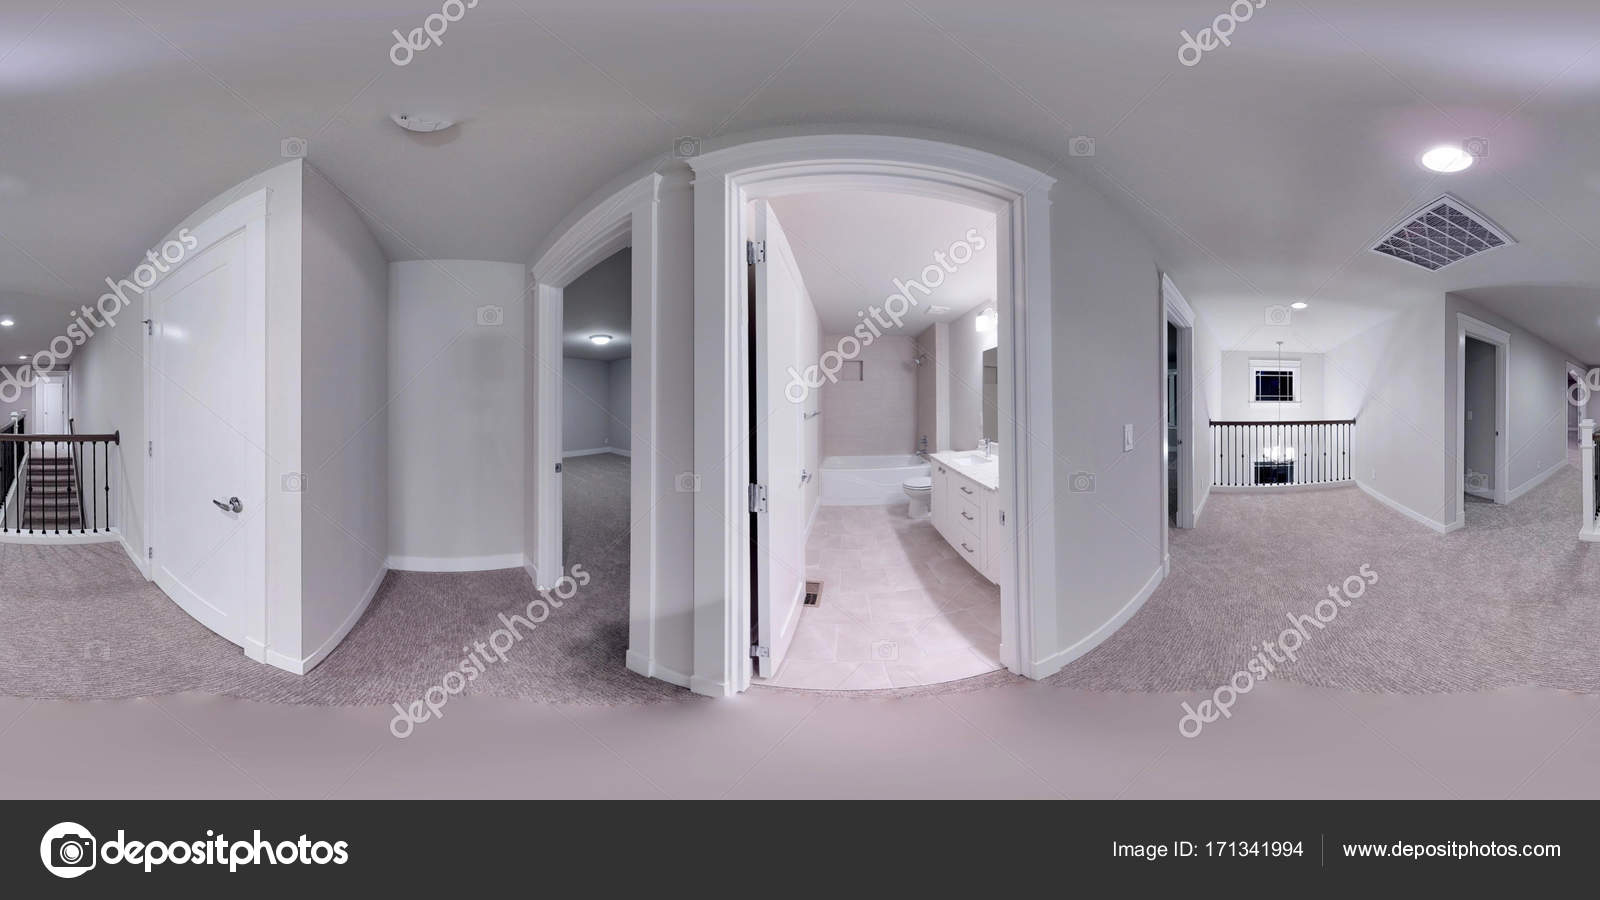 Ordinaire 3d Illustration Spherical 360 Degrees, Seamless Panorama Of The Bathroom Interior  Design. Modern Luxury New Construction House In Bellevue, Washington State  ...